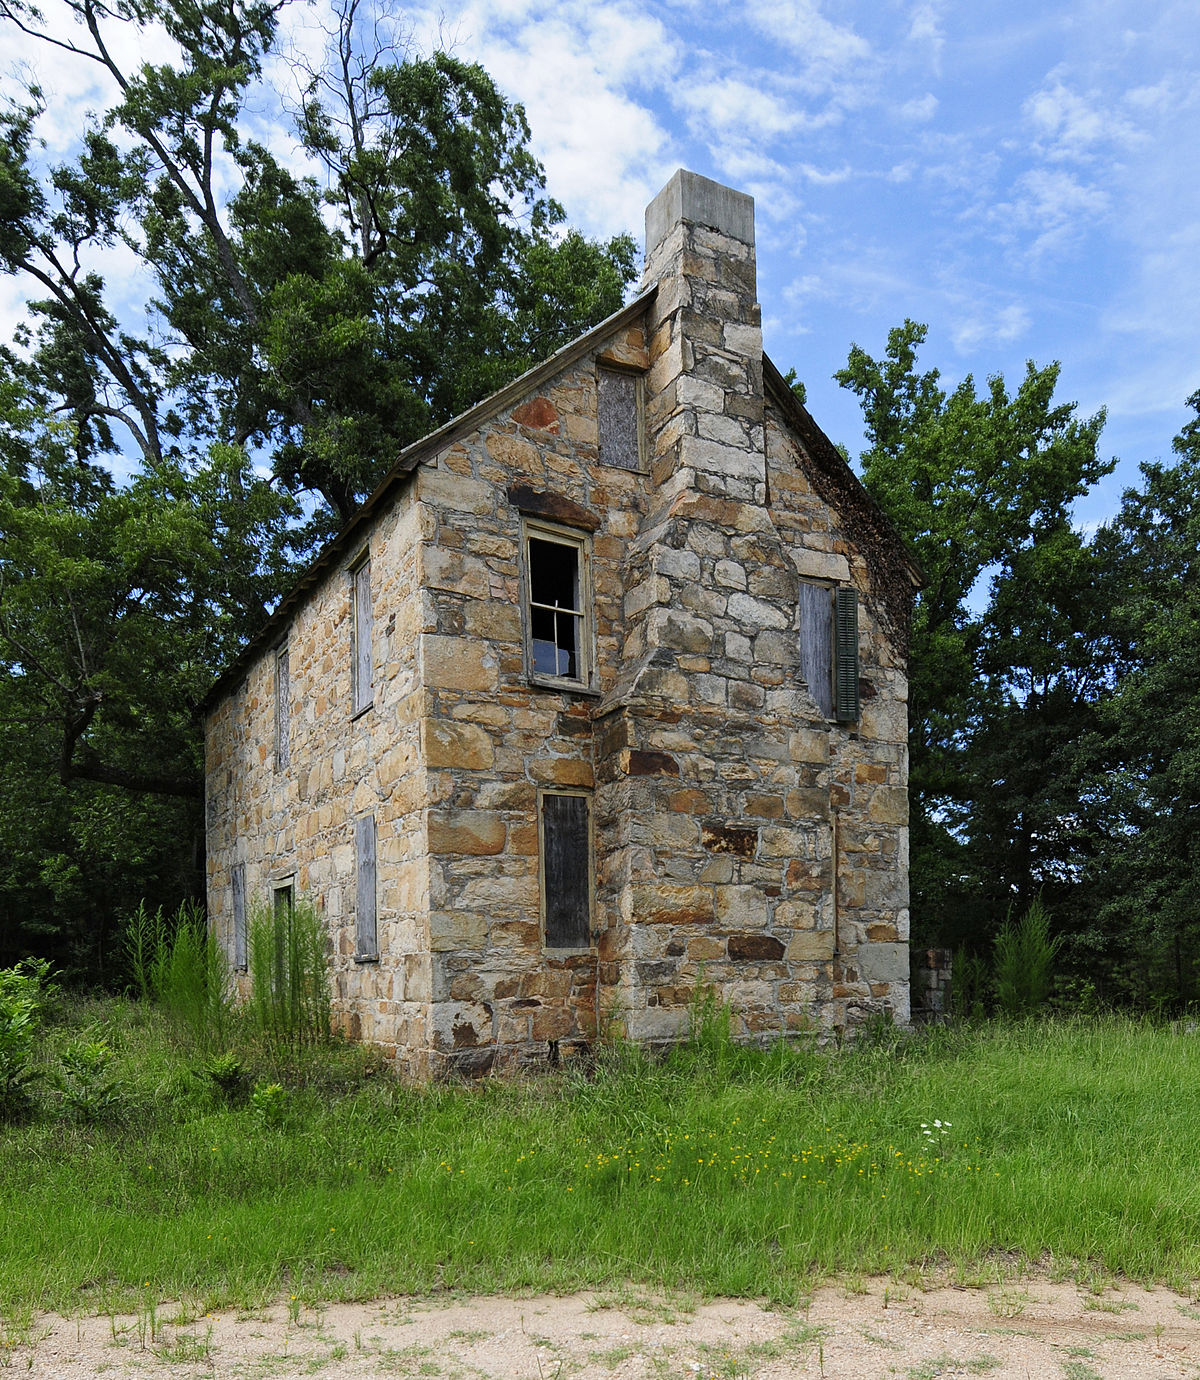 Rock For House Exterior : Old stone house winnsboro south carolina wikipedia